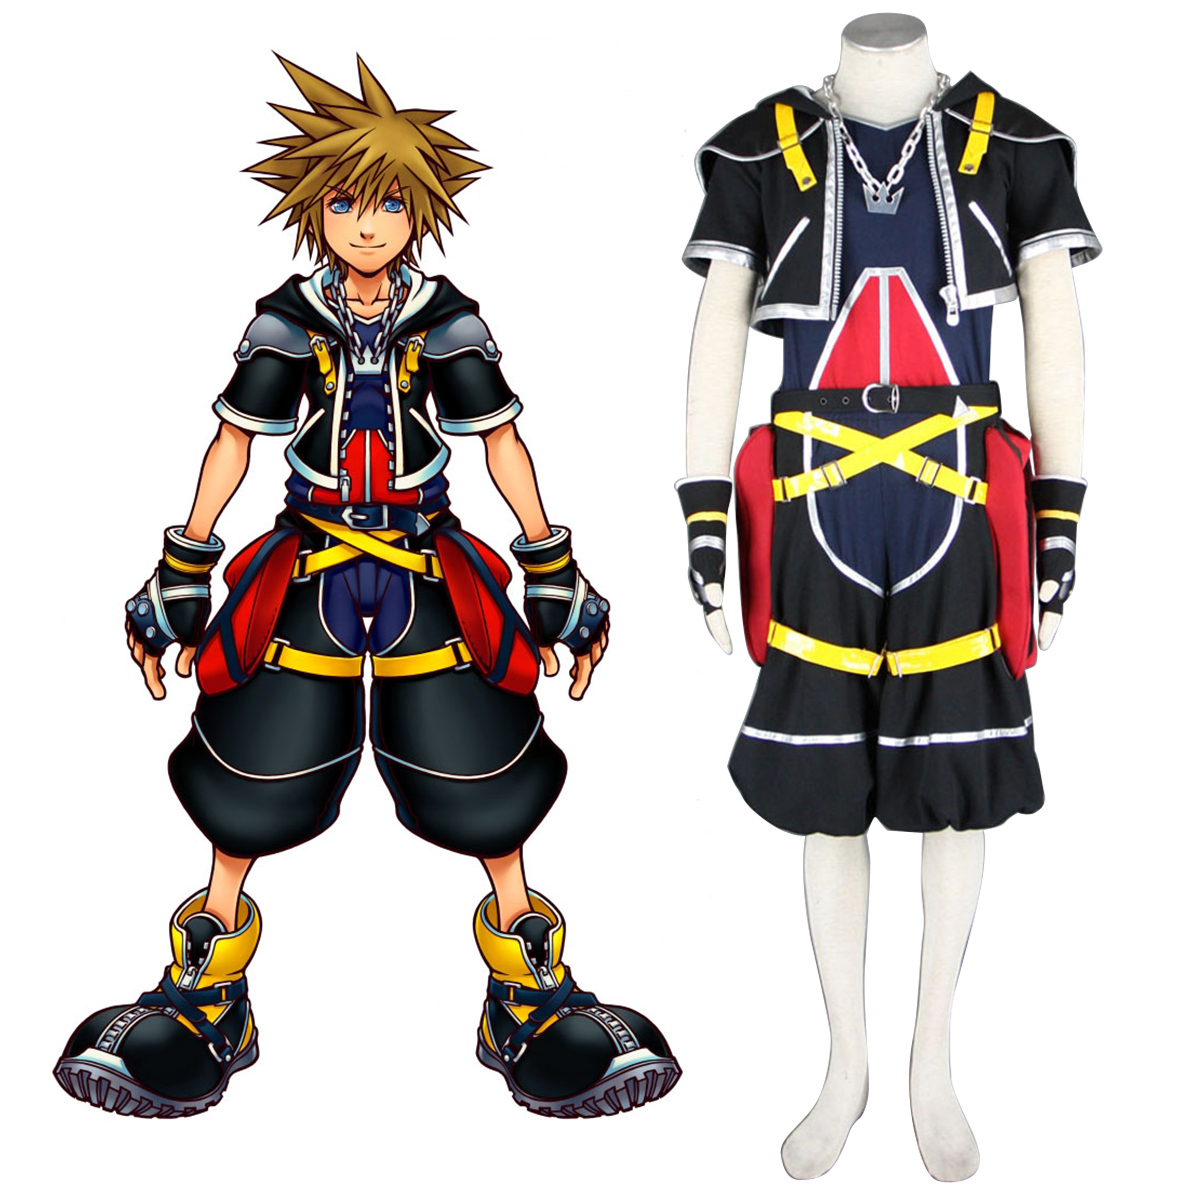 Kingdom Hearts Sora 1 Cosplay Kostym Sverige